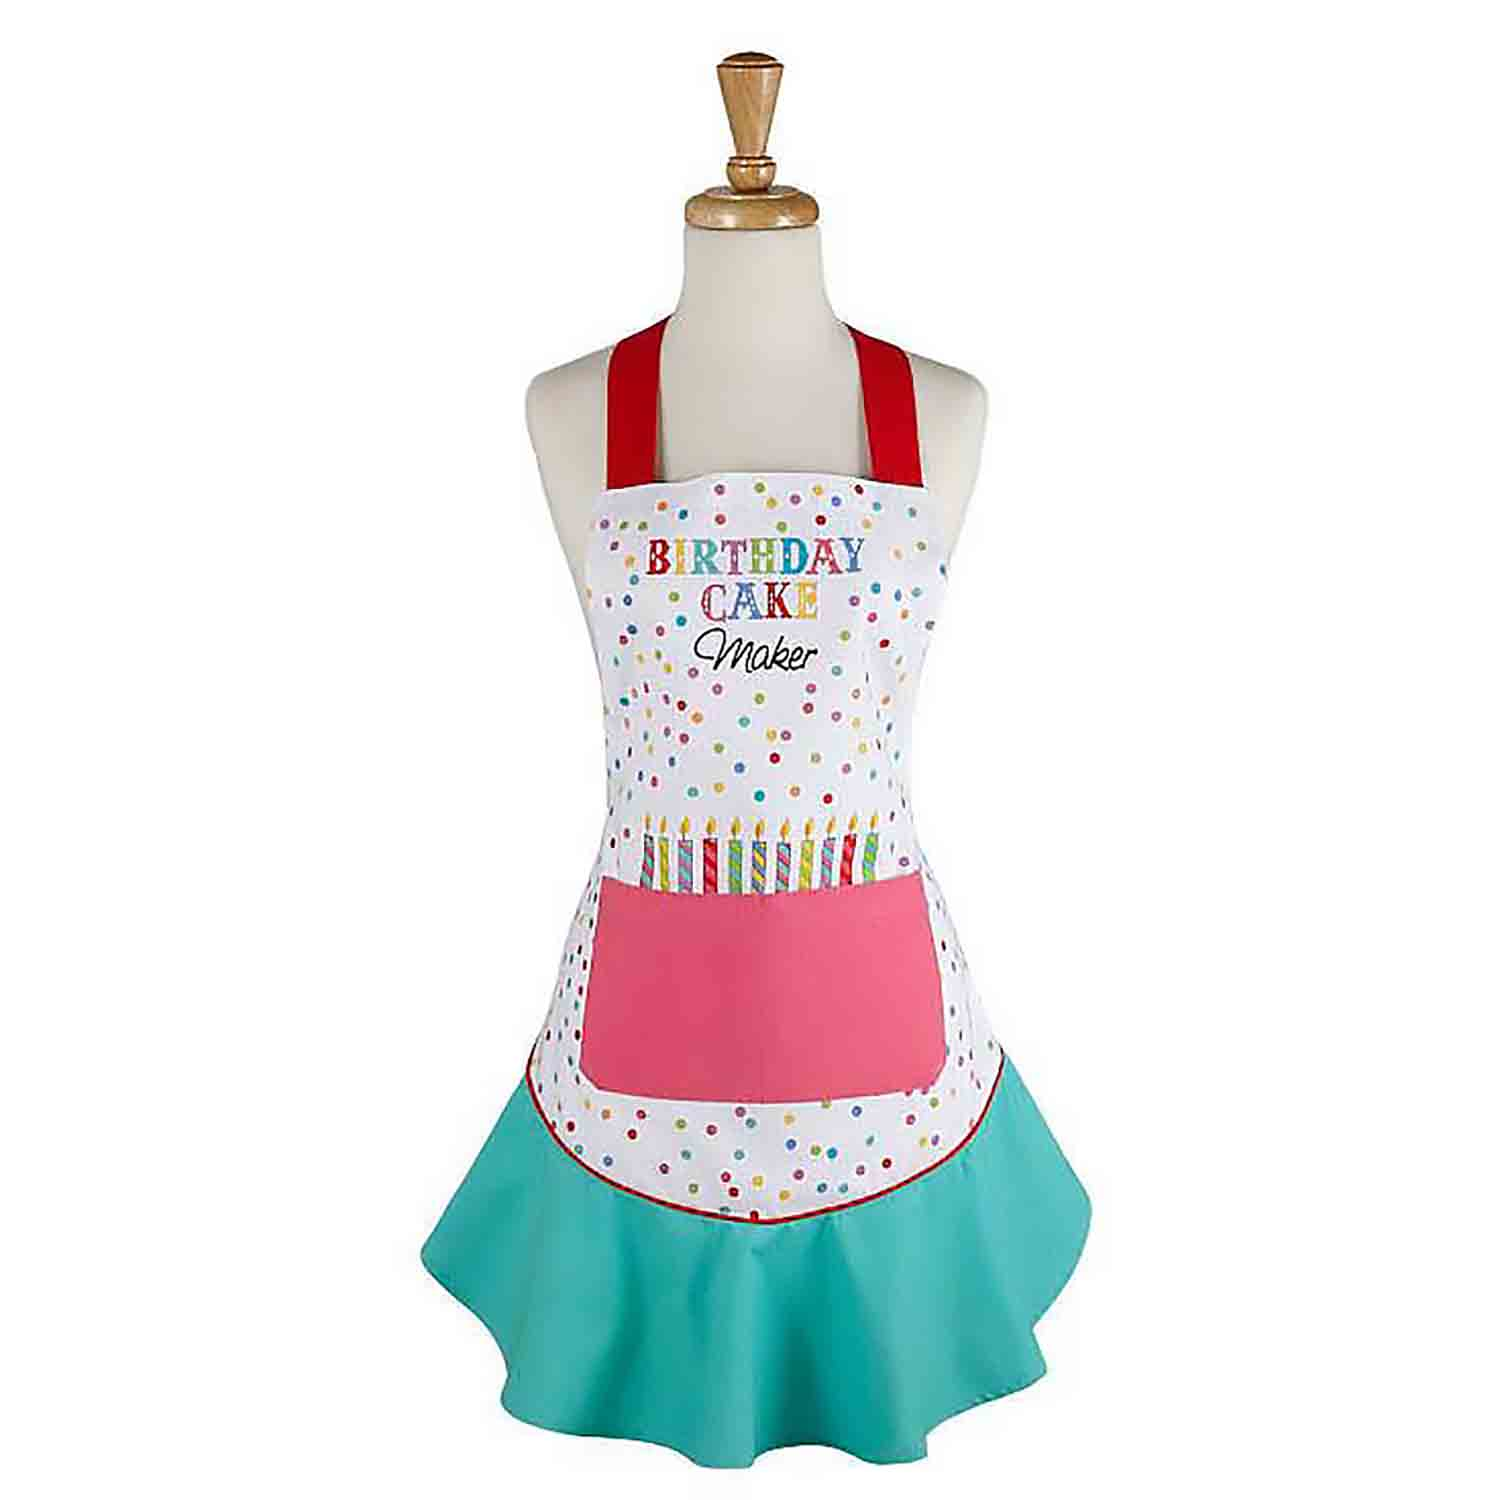 Birthday Cake Maker Apron